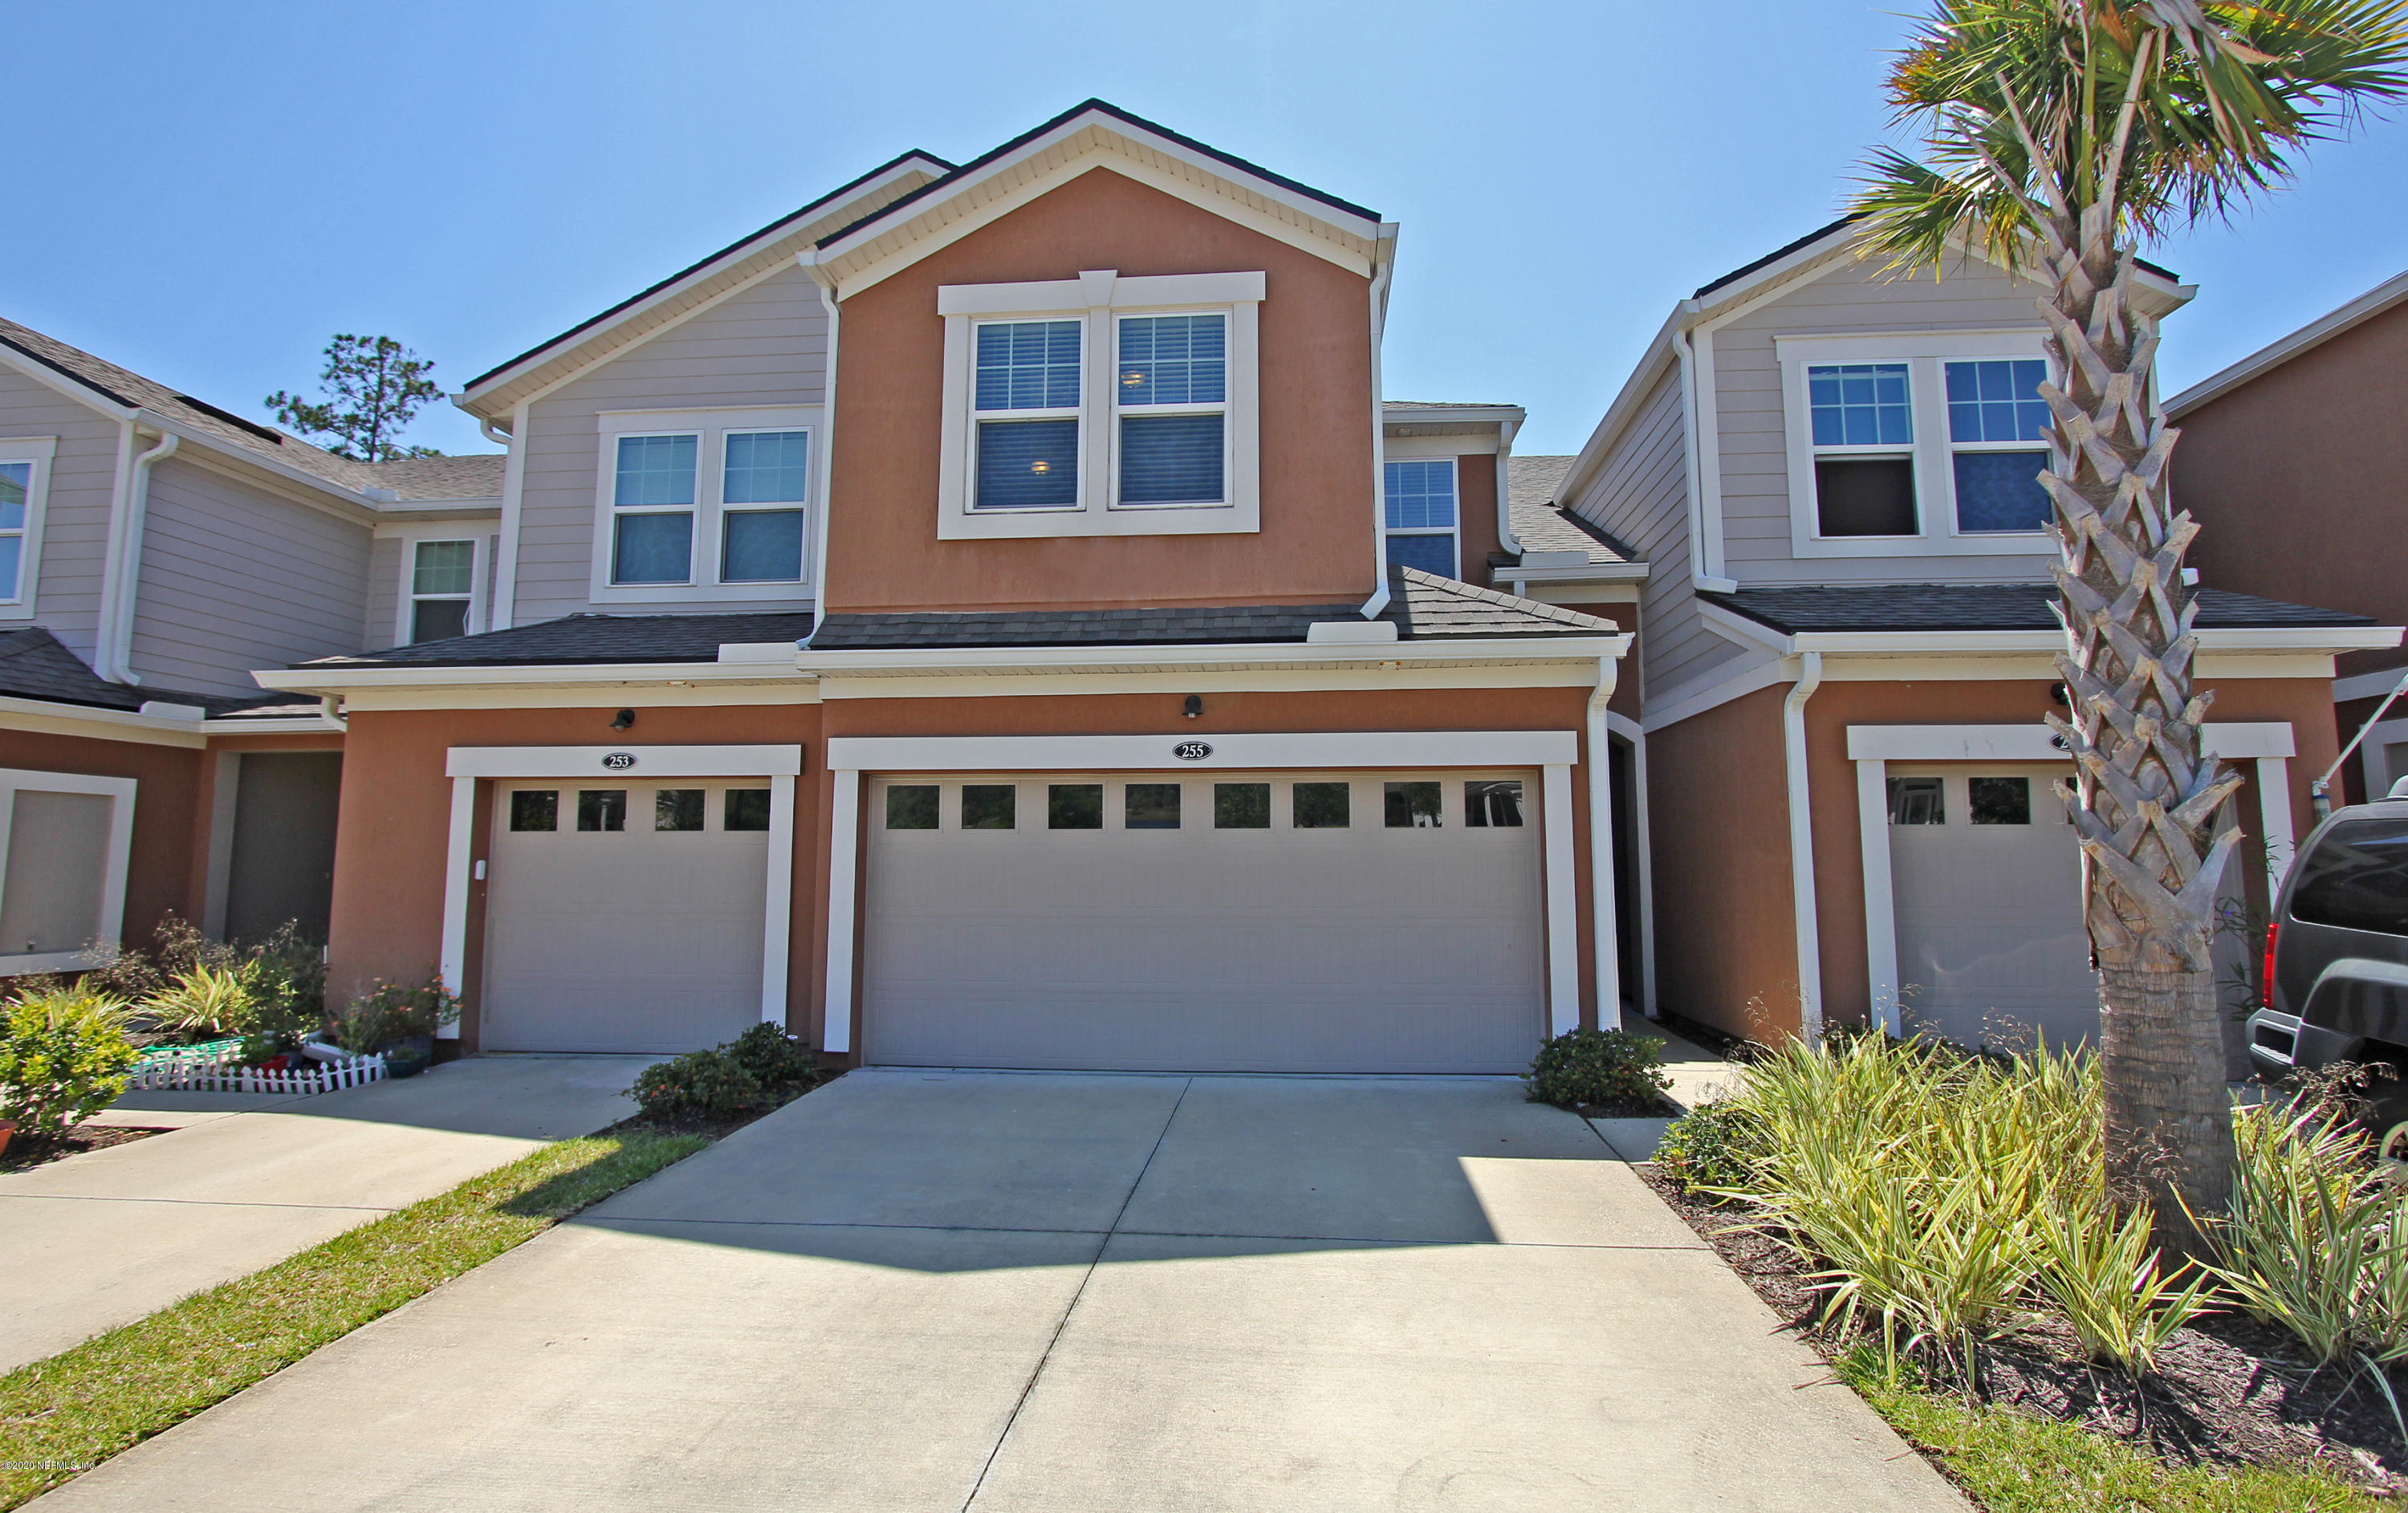 255 RICHMOND, ST JOHNS, FLORIDA 32259, 3 Bedrooms Bedrooms, ,2 BathroomsBathrooms,Residential,For sale,RICHMOND,1052888